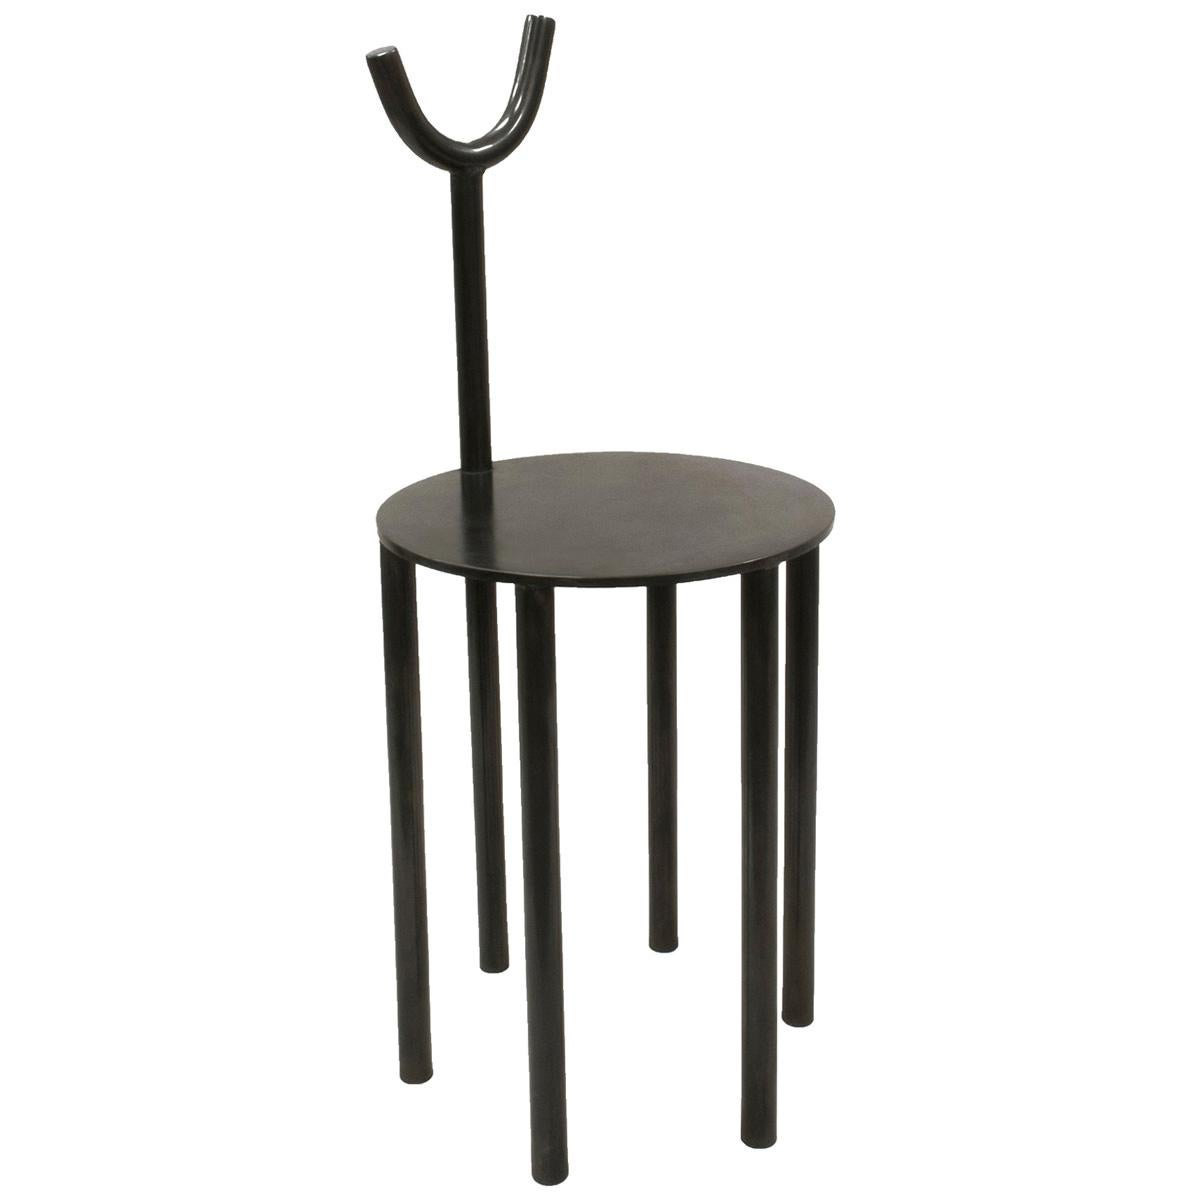 Room for Irregularities Contemporary Side Chair in Steel by Walac Studio